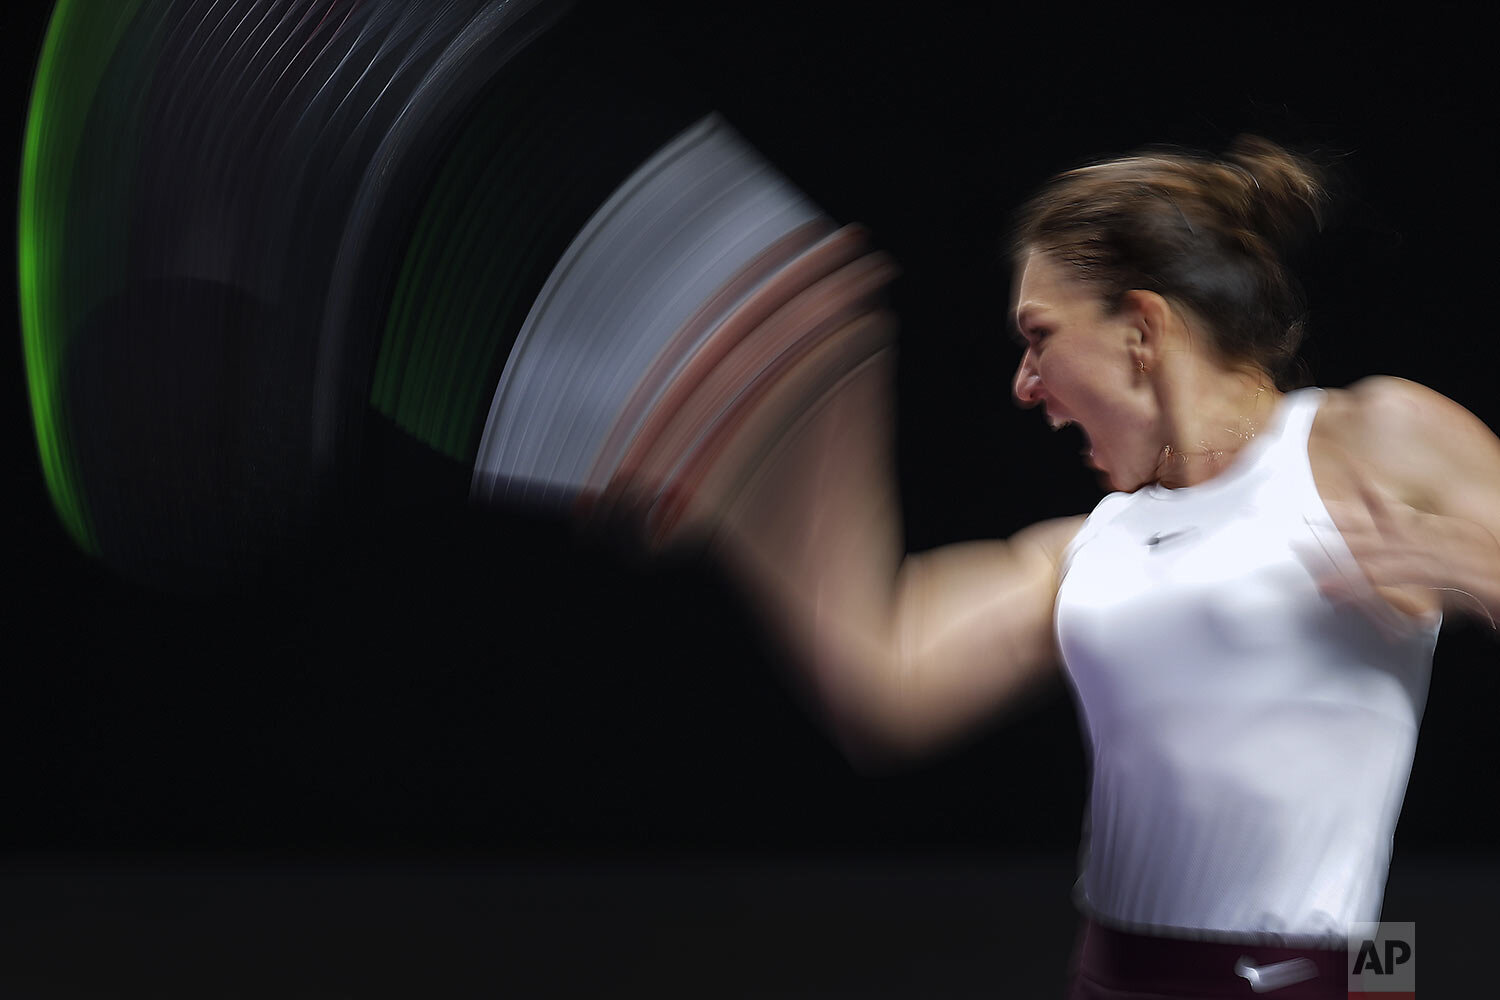 Simona Halep, of Romania, hits a return shot against Bianca Andreescu of Canada during their WTA Finals tennis tournament in Shenzhen, China's Guangdong province, Monday, Oct. 28, 2019. (AP Photo/Andy Wong)